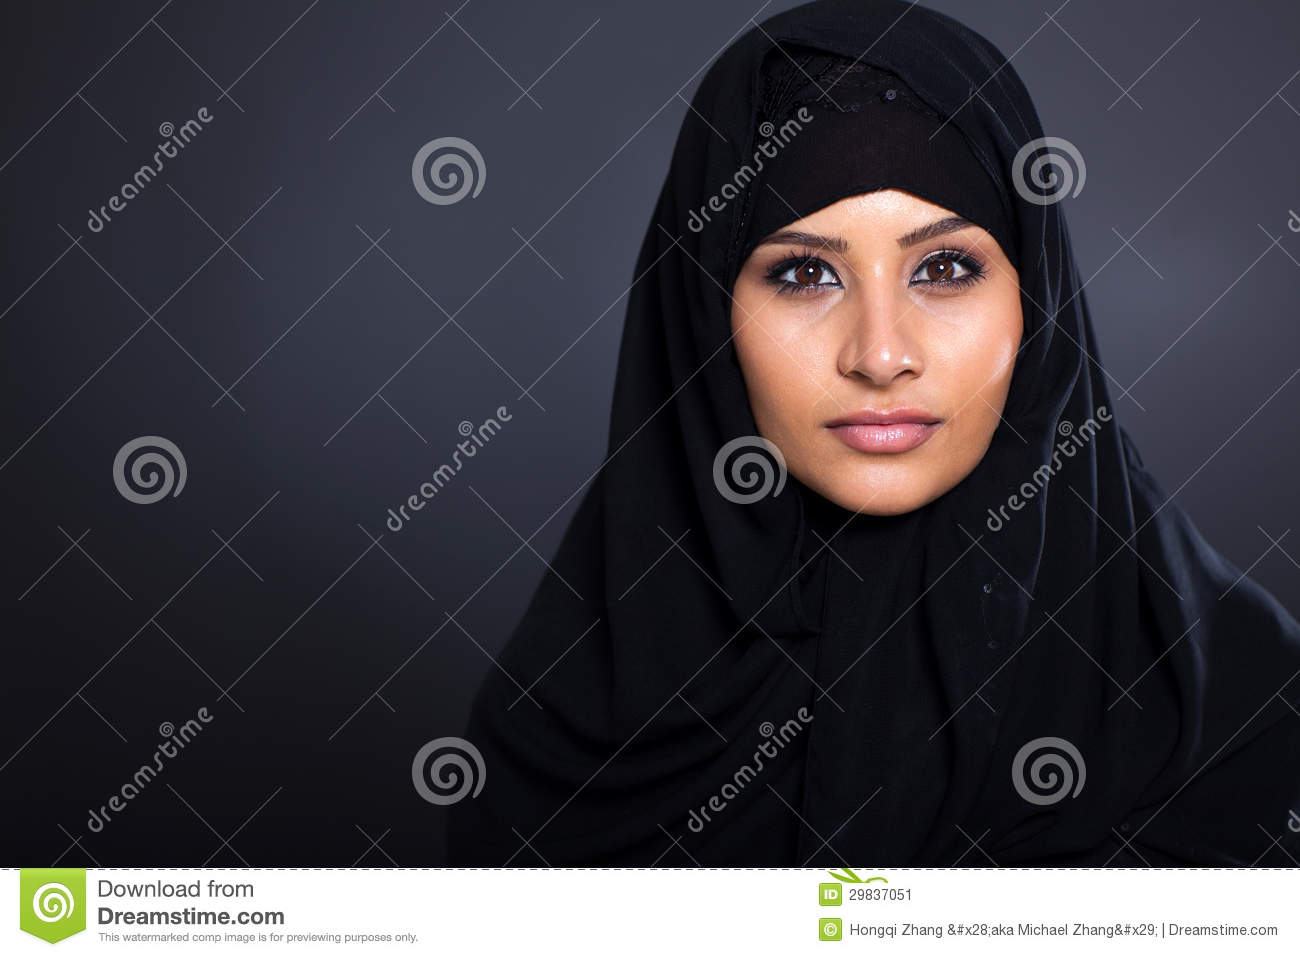 ebony single muslim girls The challenges of young muslim girls to ignore the pressures of dating in the western world.